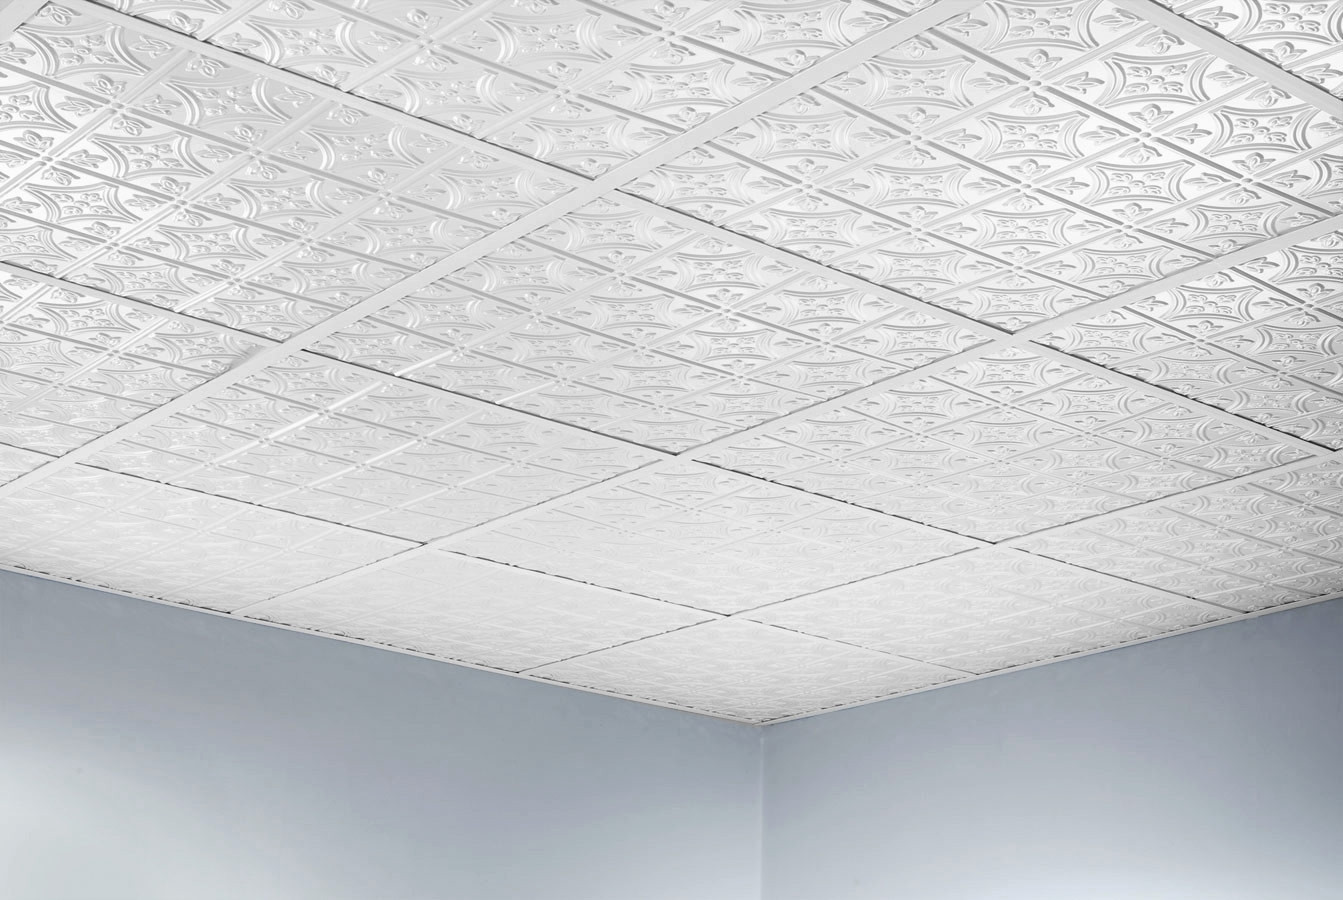 Acoustic Ceiling Tiles Cost Amp Installation Guide 2019